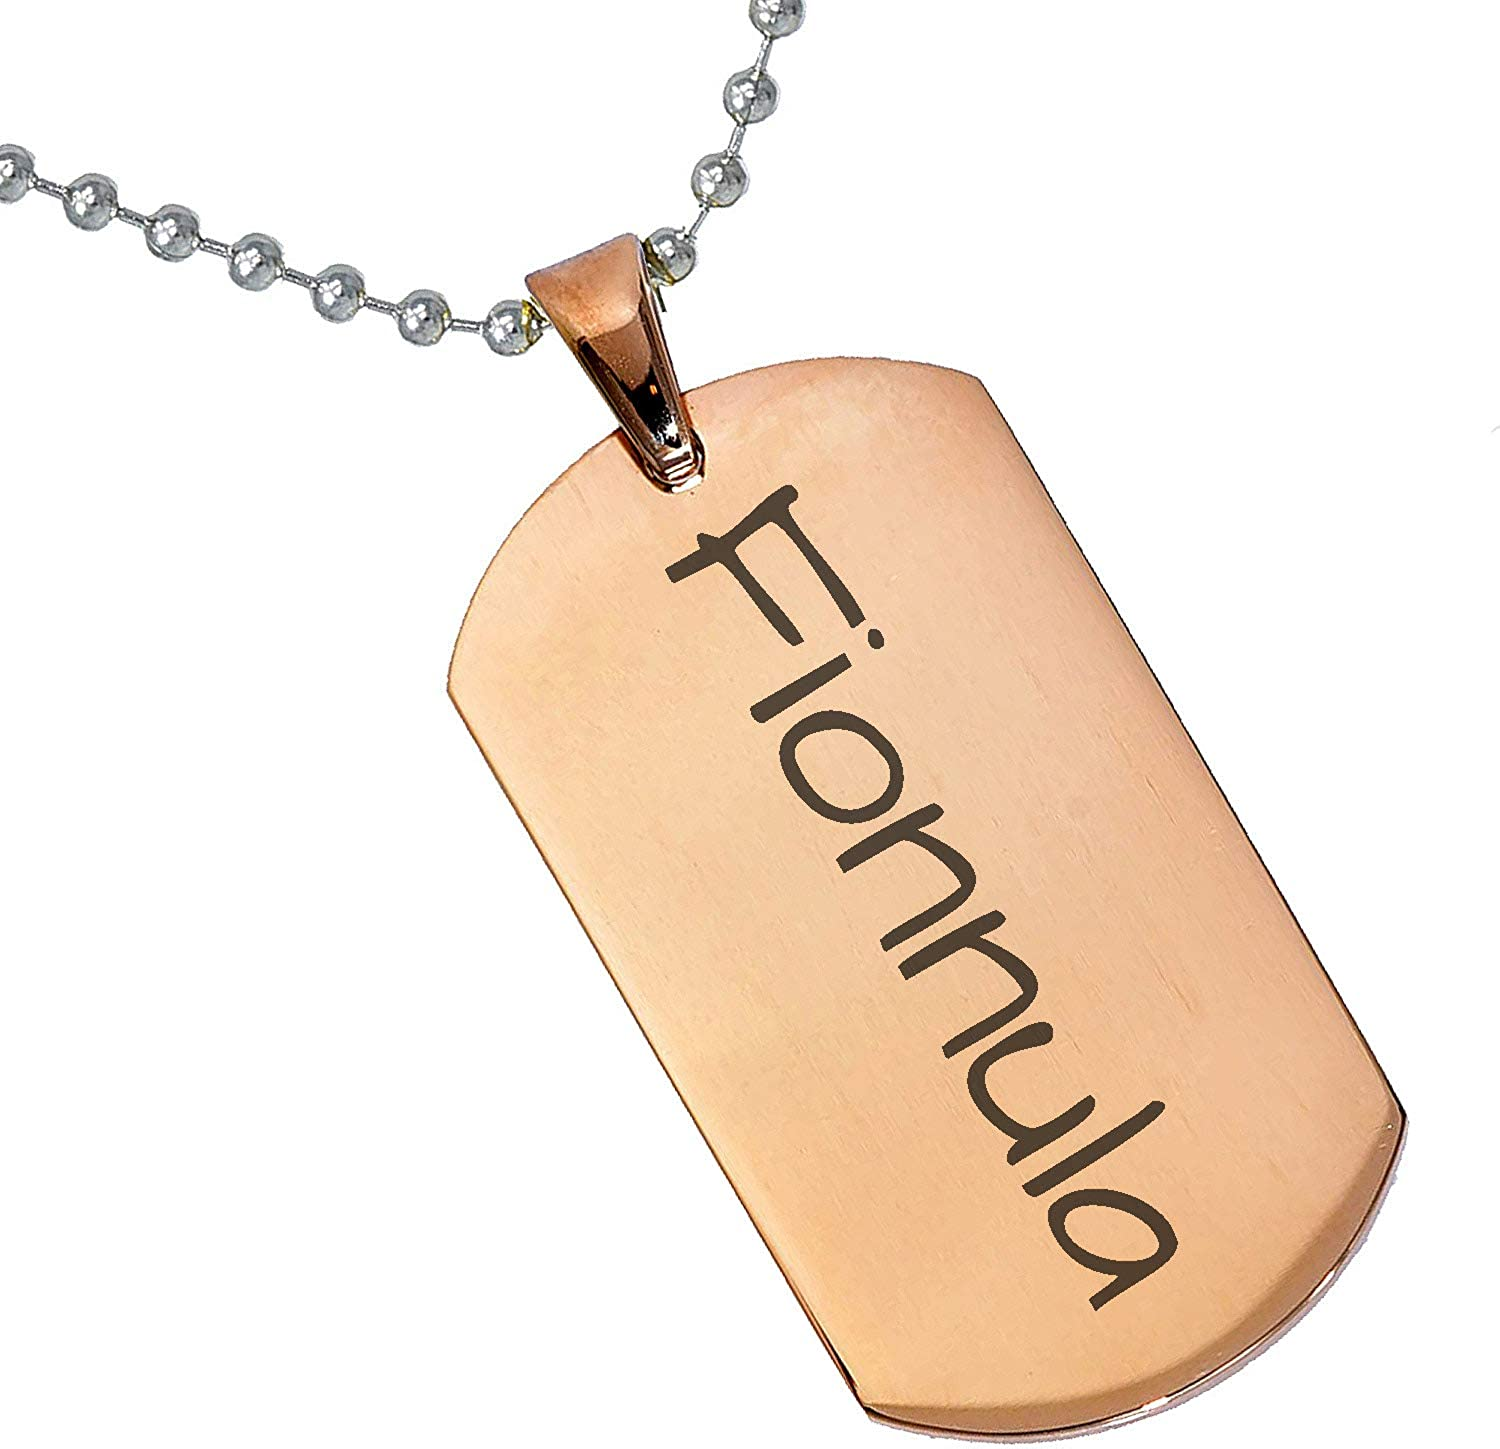 Stainless Steel Silver Gold Black Rose Gold Color Baby Name Fionnula Engraved Personalized Gifts For Son Daughter Boyfriend Girlfriend Initial Customizable Pendant Necklace Dog Tags 24 Ball Chain